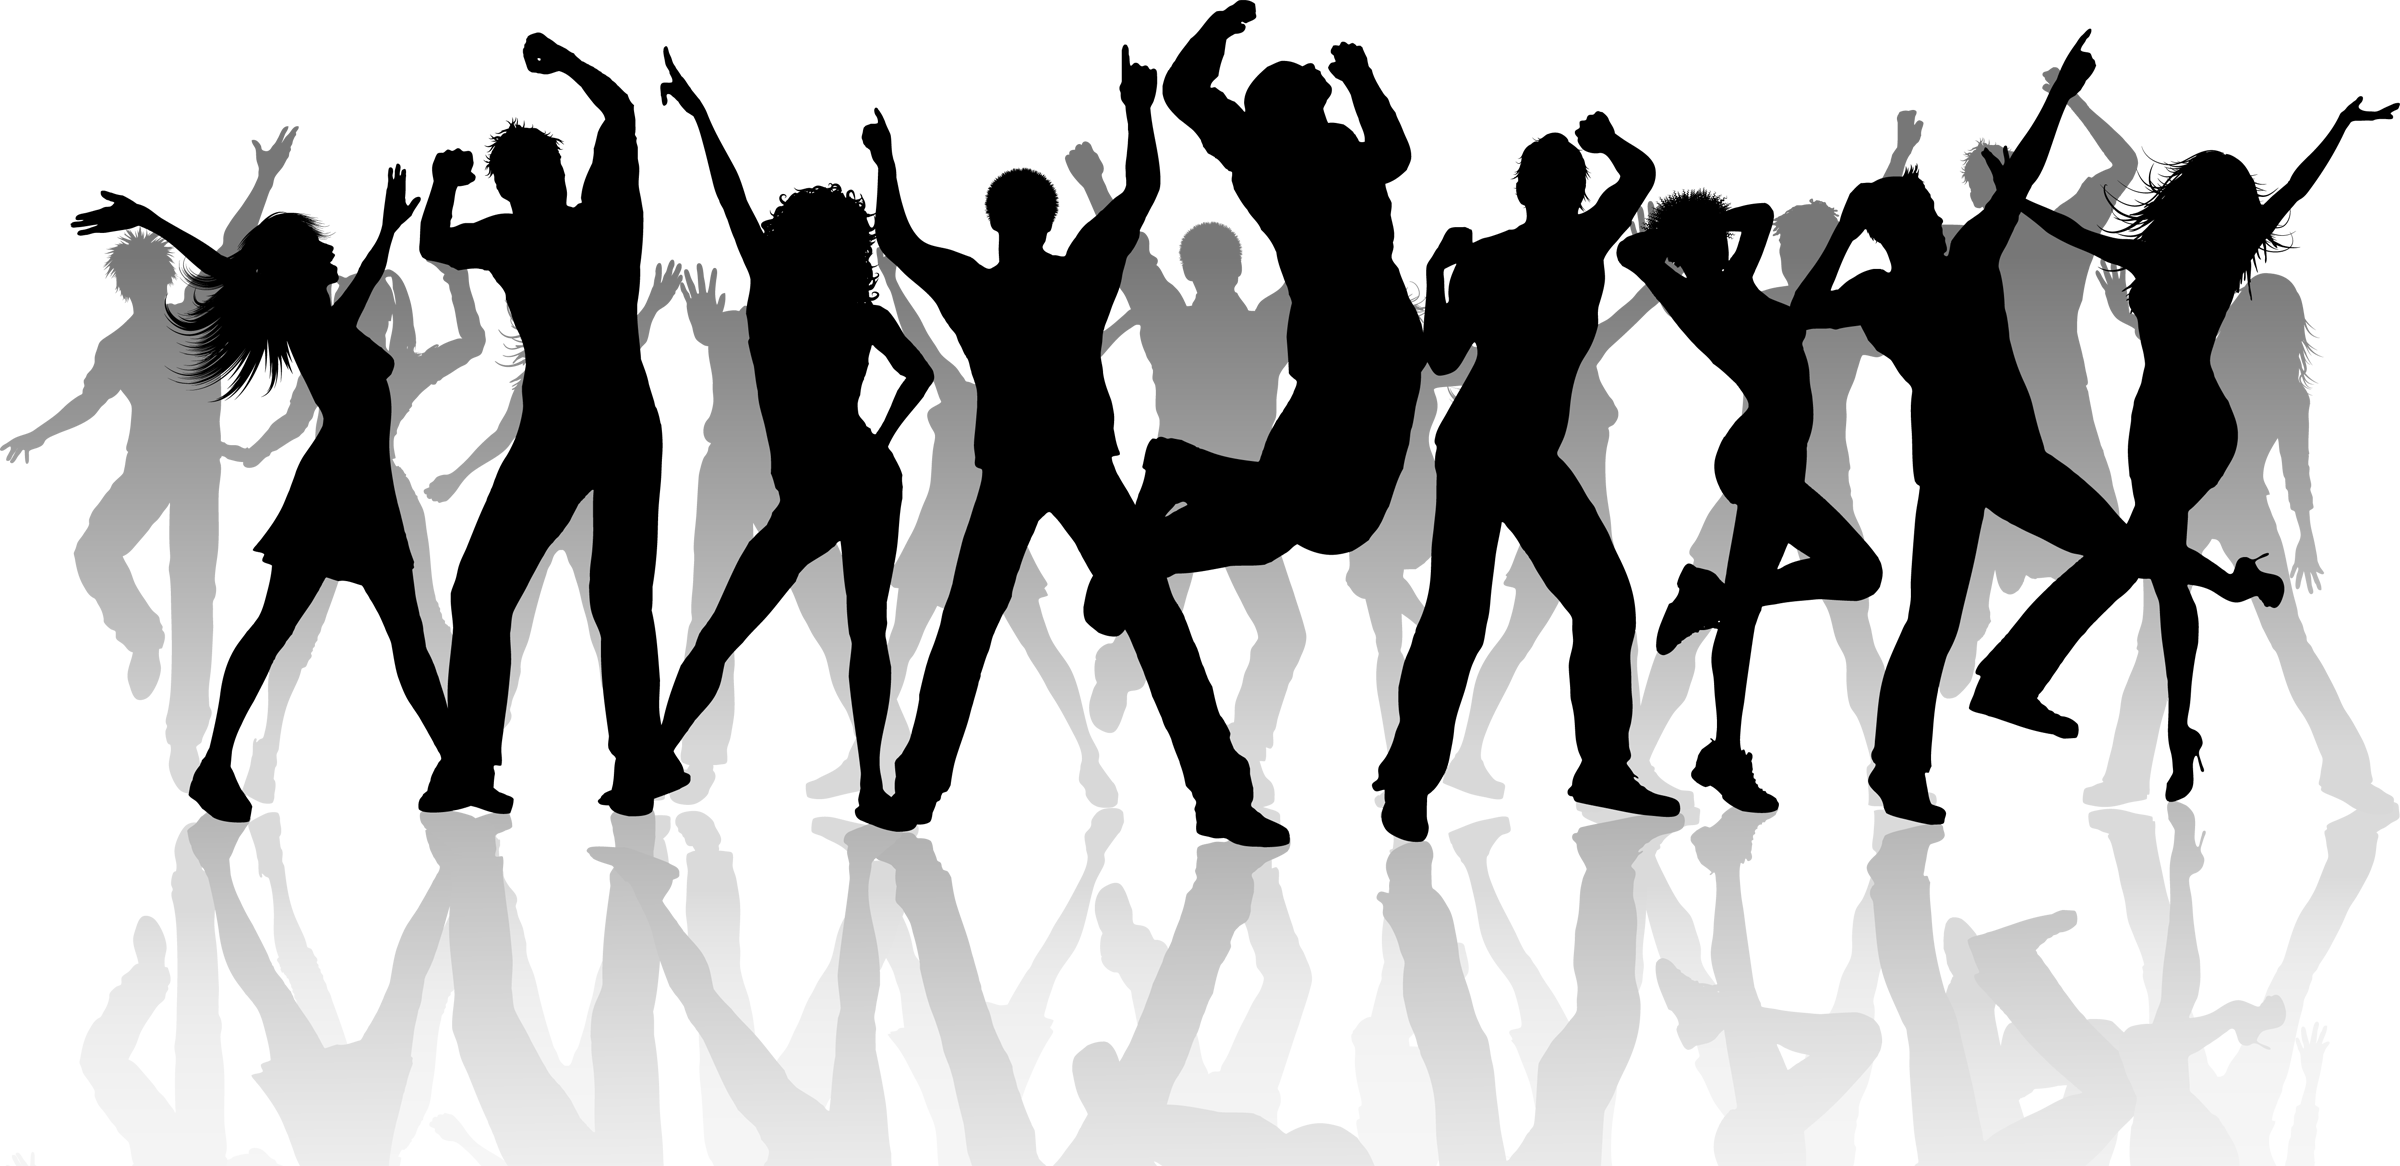 Youth clipart silhouette transparent background. Dj png images free